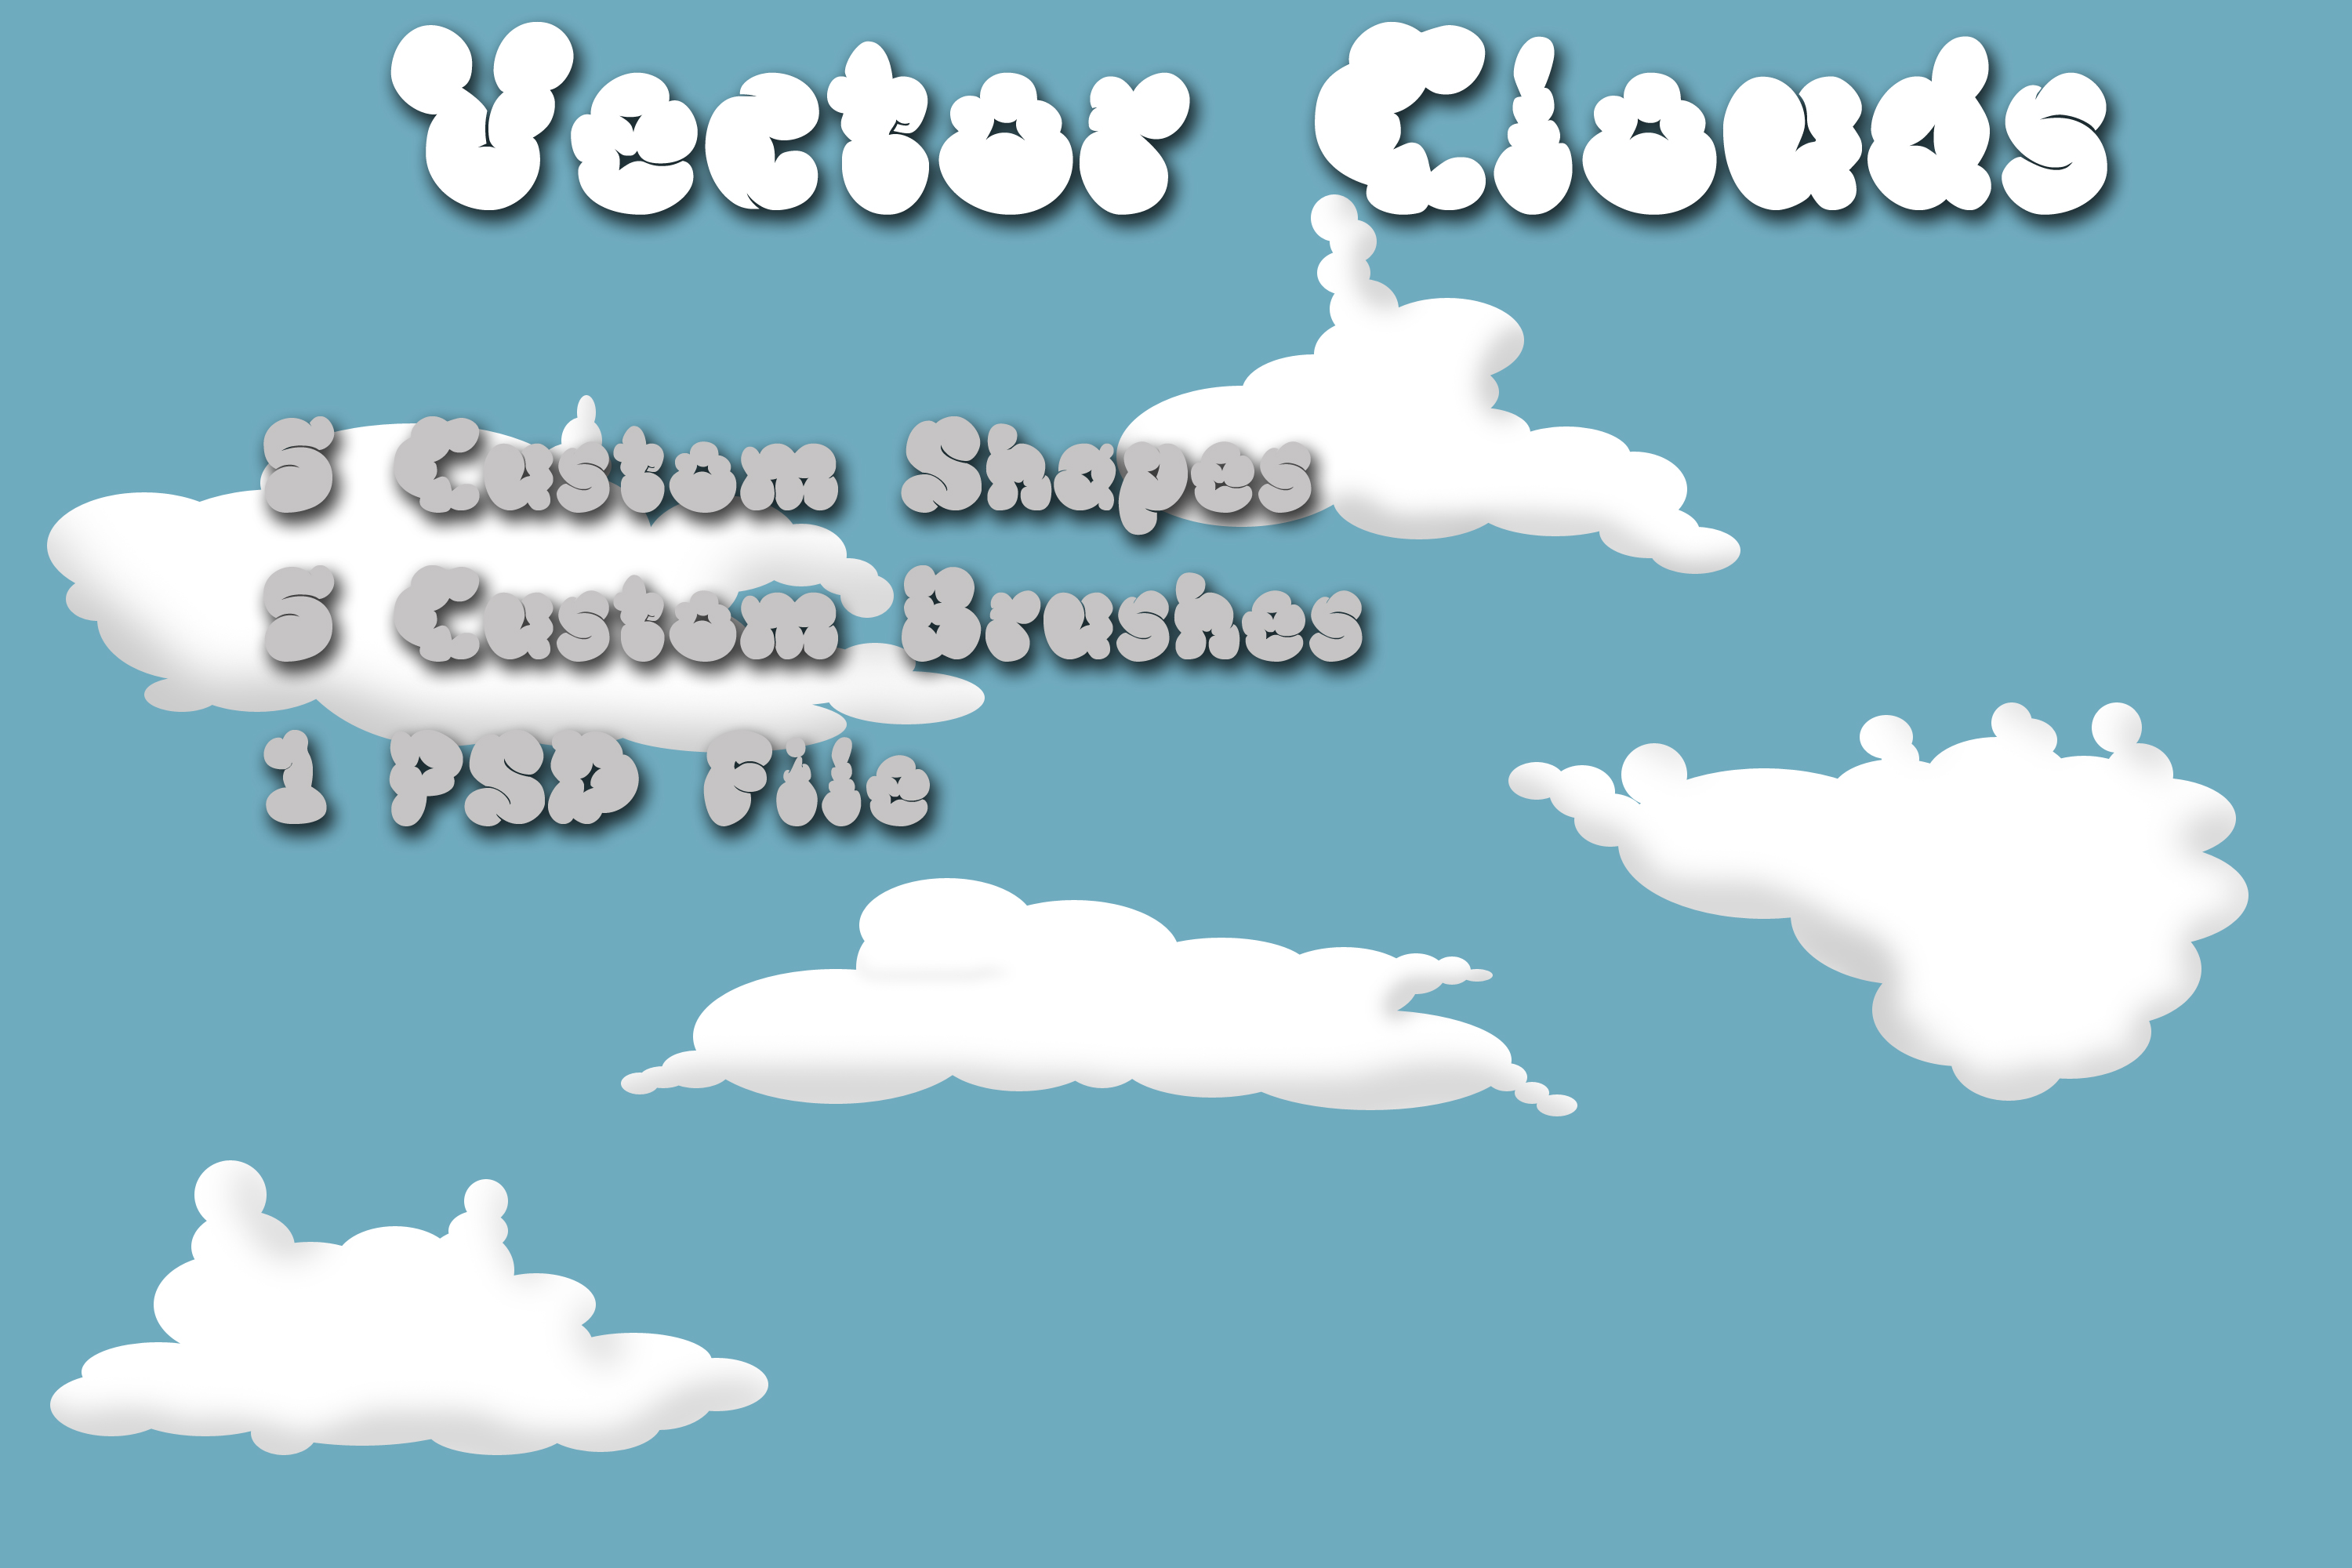 Clouds brushes and shapes